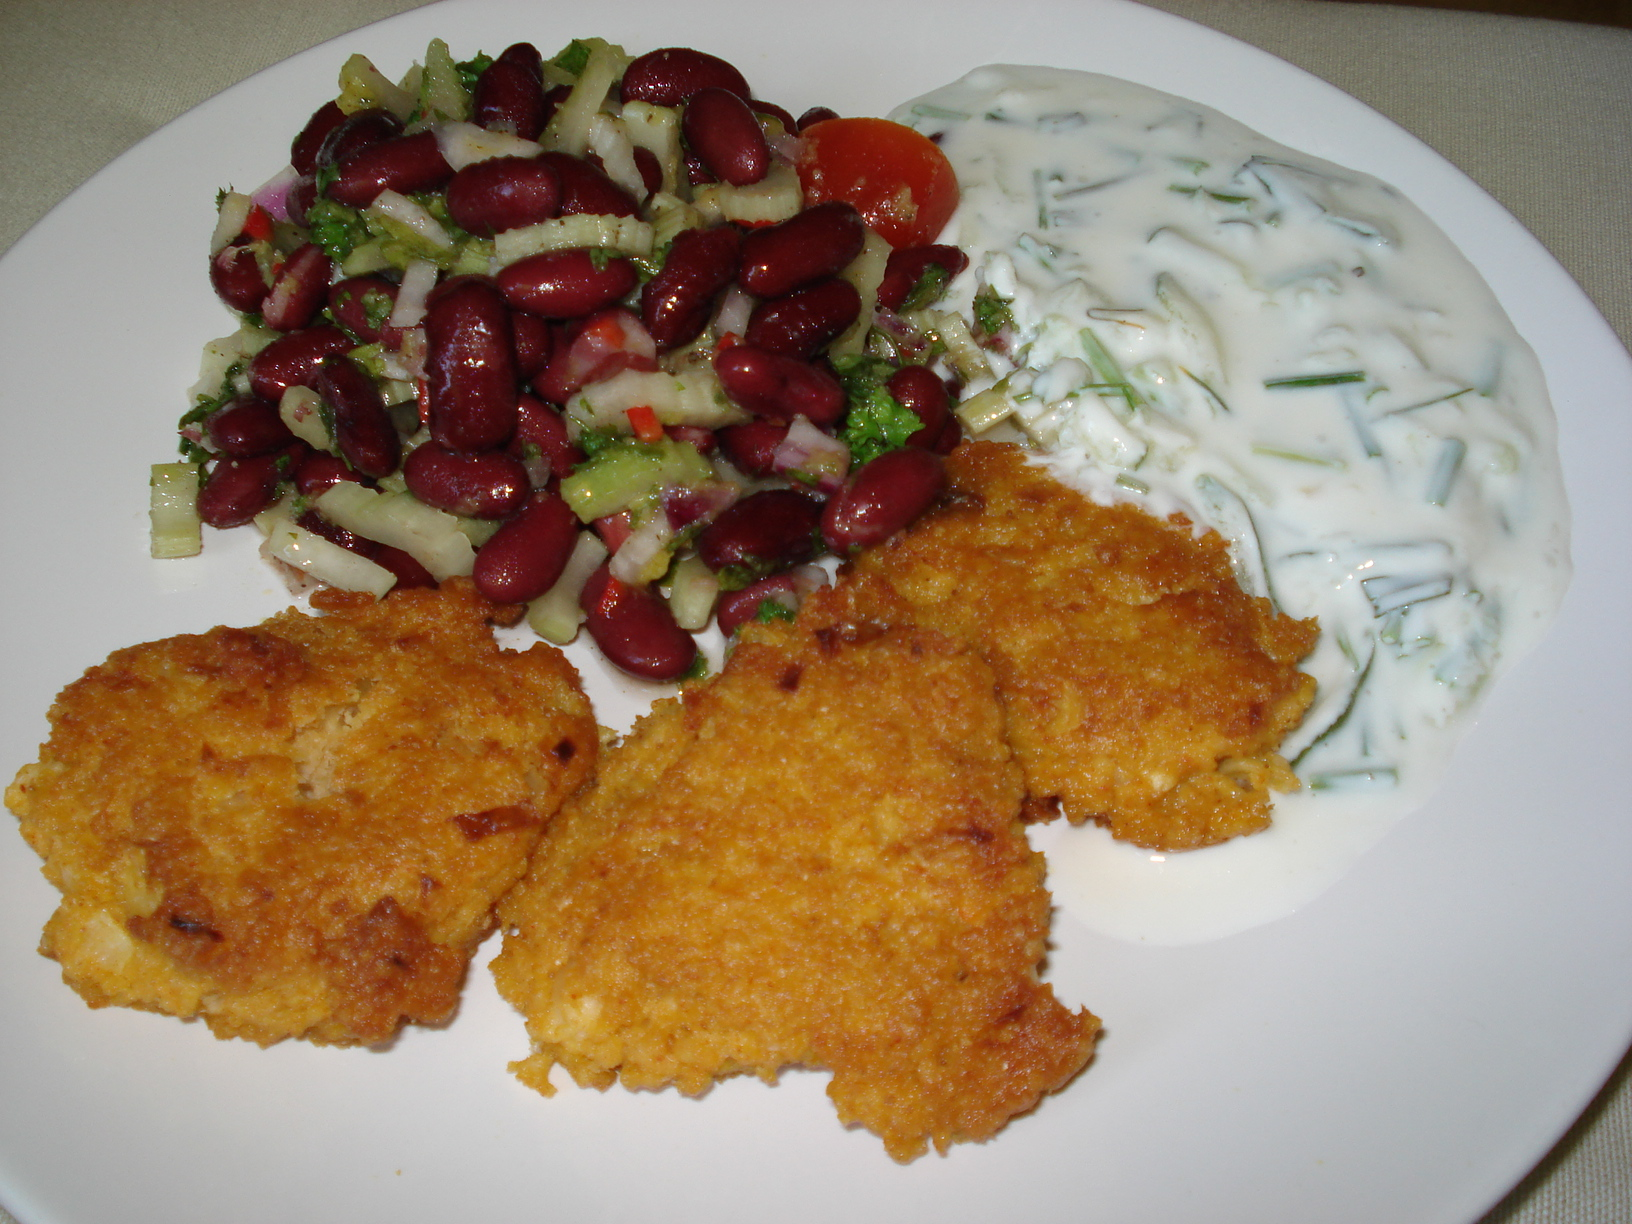 Millet patties with bean salad and herb tzatziki